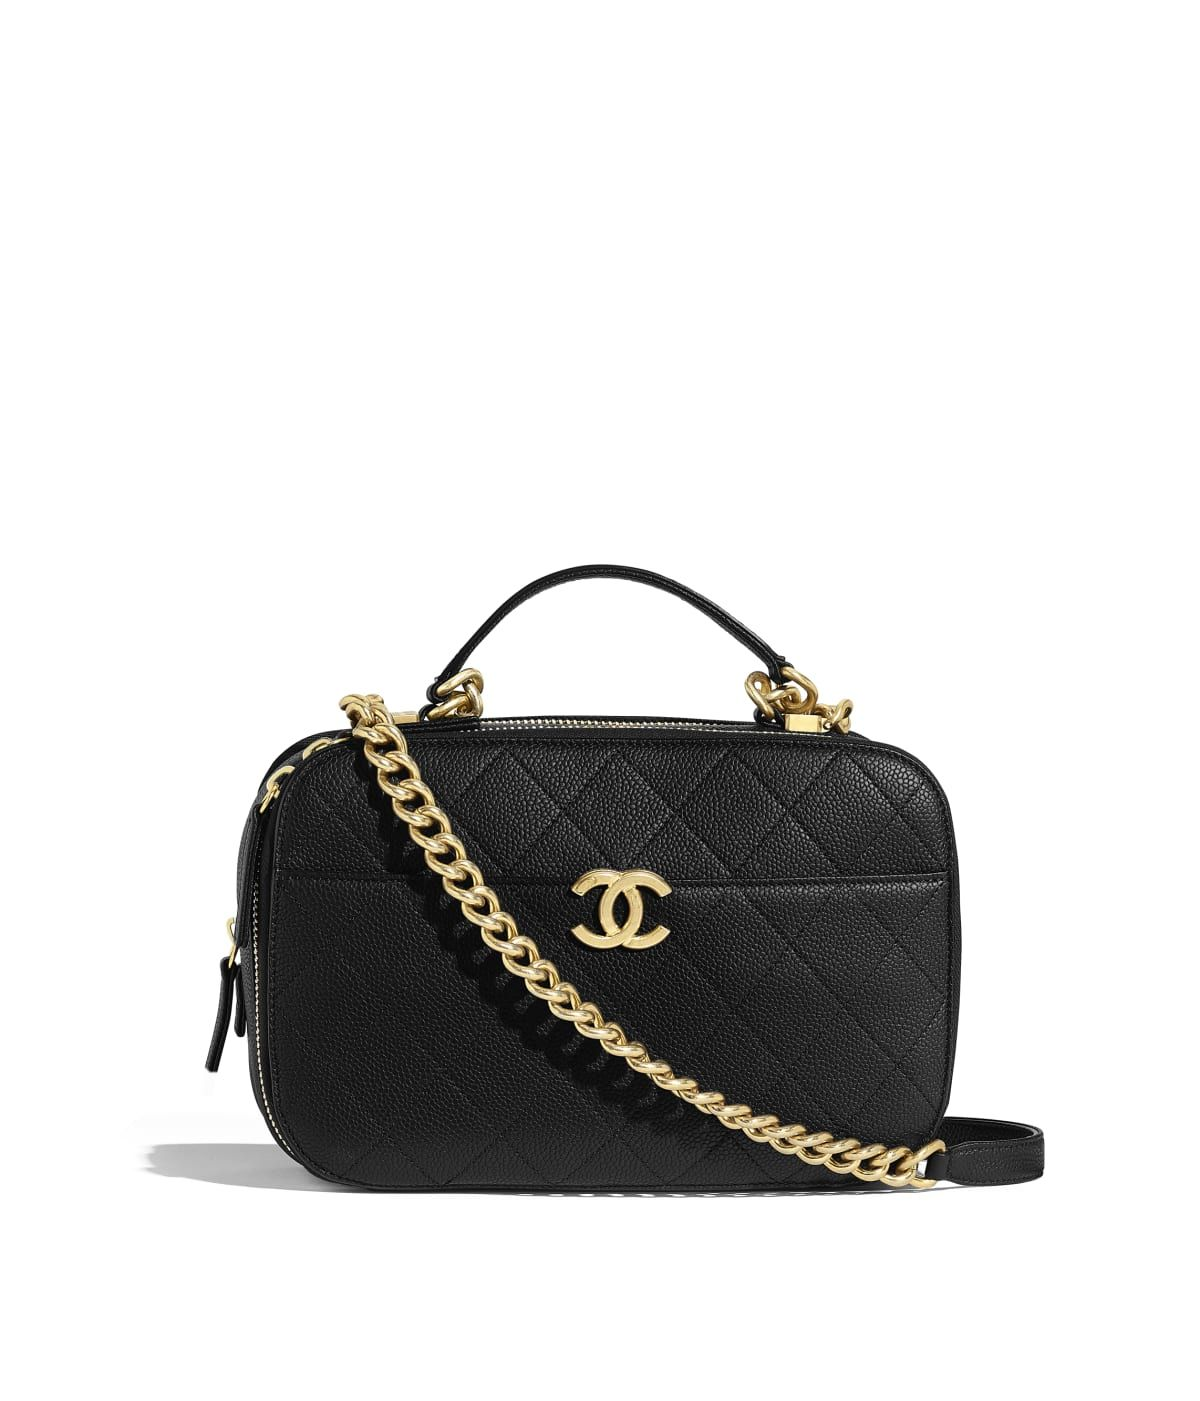 326afc775d95 Handbags of the Spring-Summer 2019 Pre-Collection CHANEL Fashion collection  : Camera Case, grained calfskin & gold-tone metal, black on the CHANEL  official ...